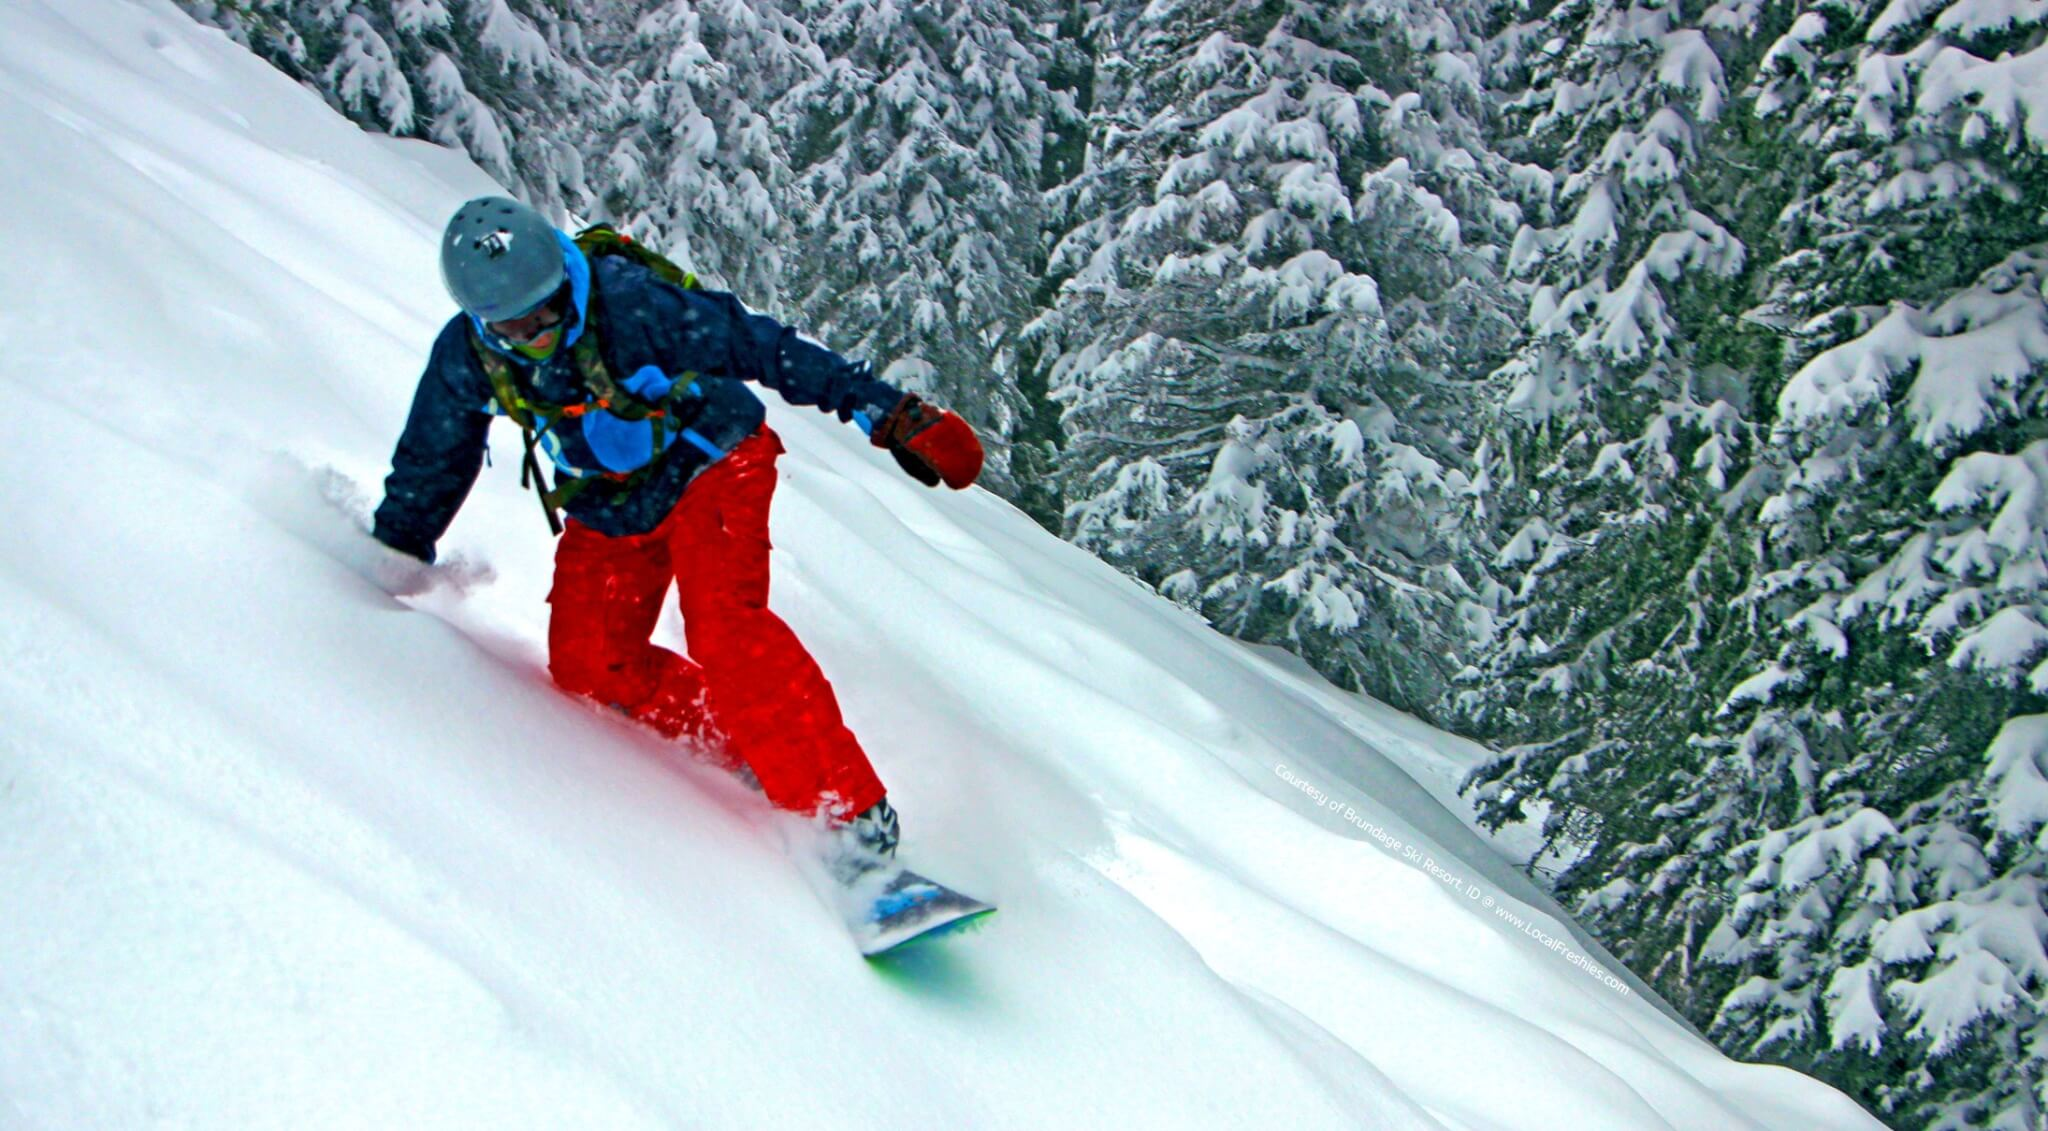 Snowboarder enjoys knee deep powder at the McCall Ski Resort of Brundage in the area